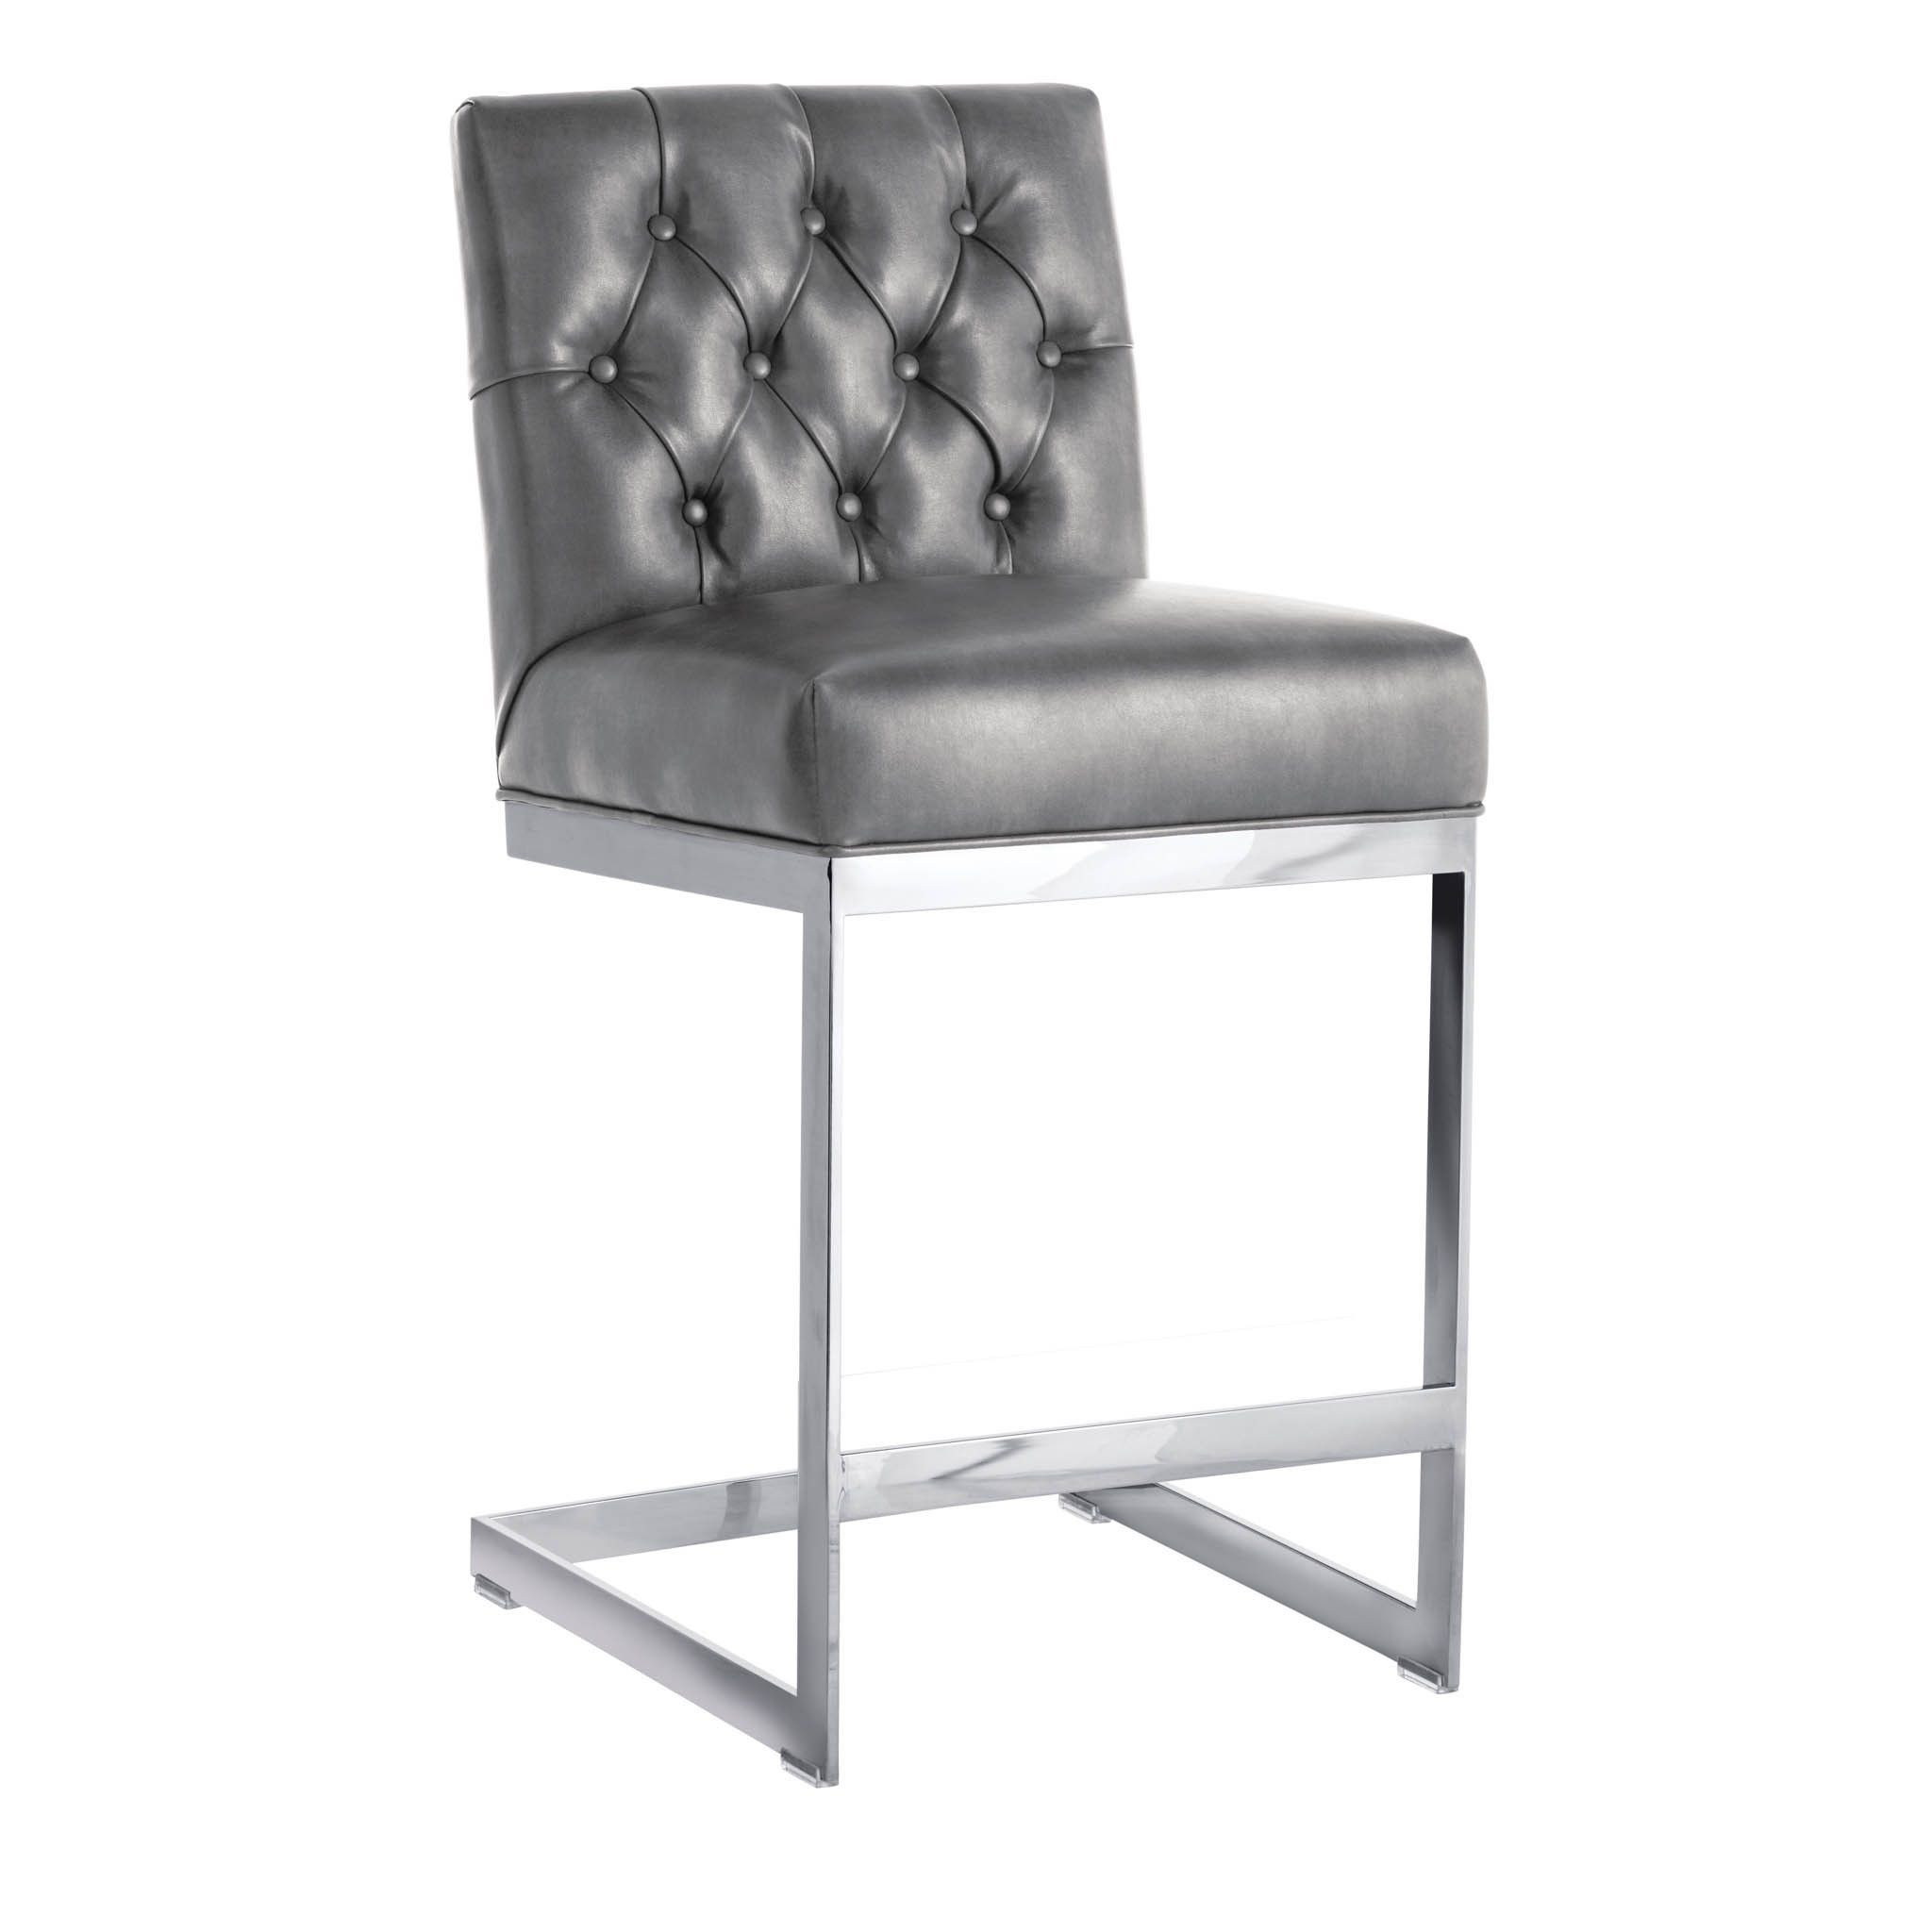 Sunpan Cavalli Grey Nobility Counter Stool Overstock Com Shopping The Best Deals On Bar Stools Leather Counter Stools Furniture Home Decor